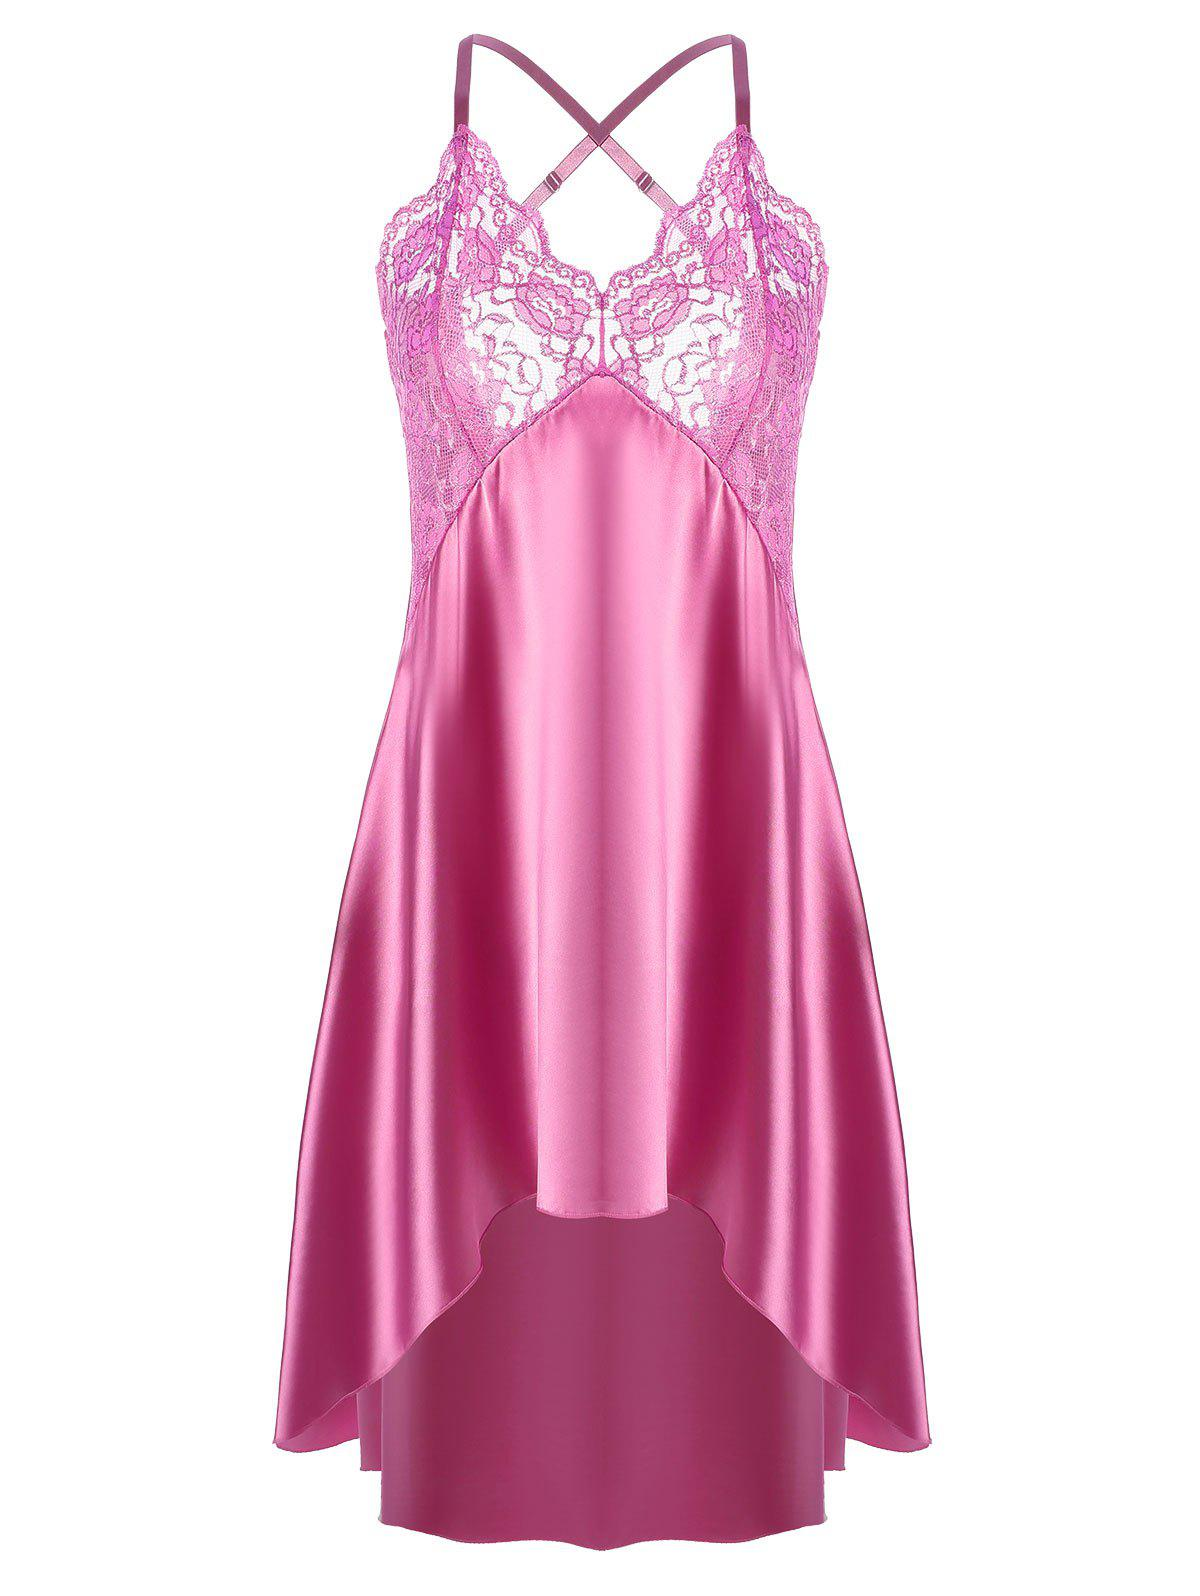 Hot Asymmetric Crossback Lace Panel Satin Slip Babydoll Dress